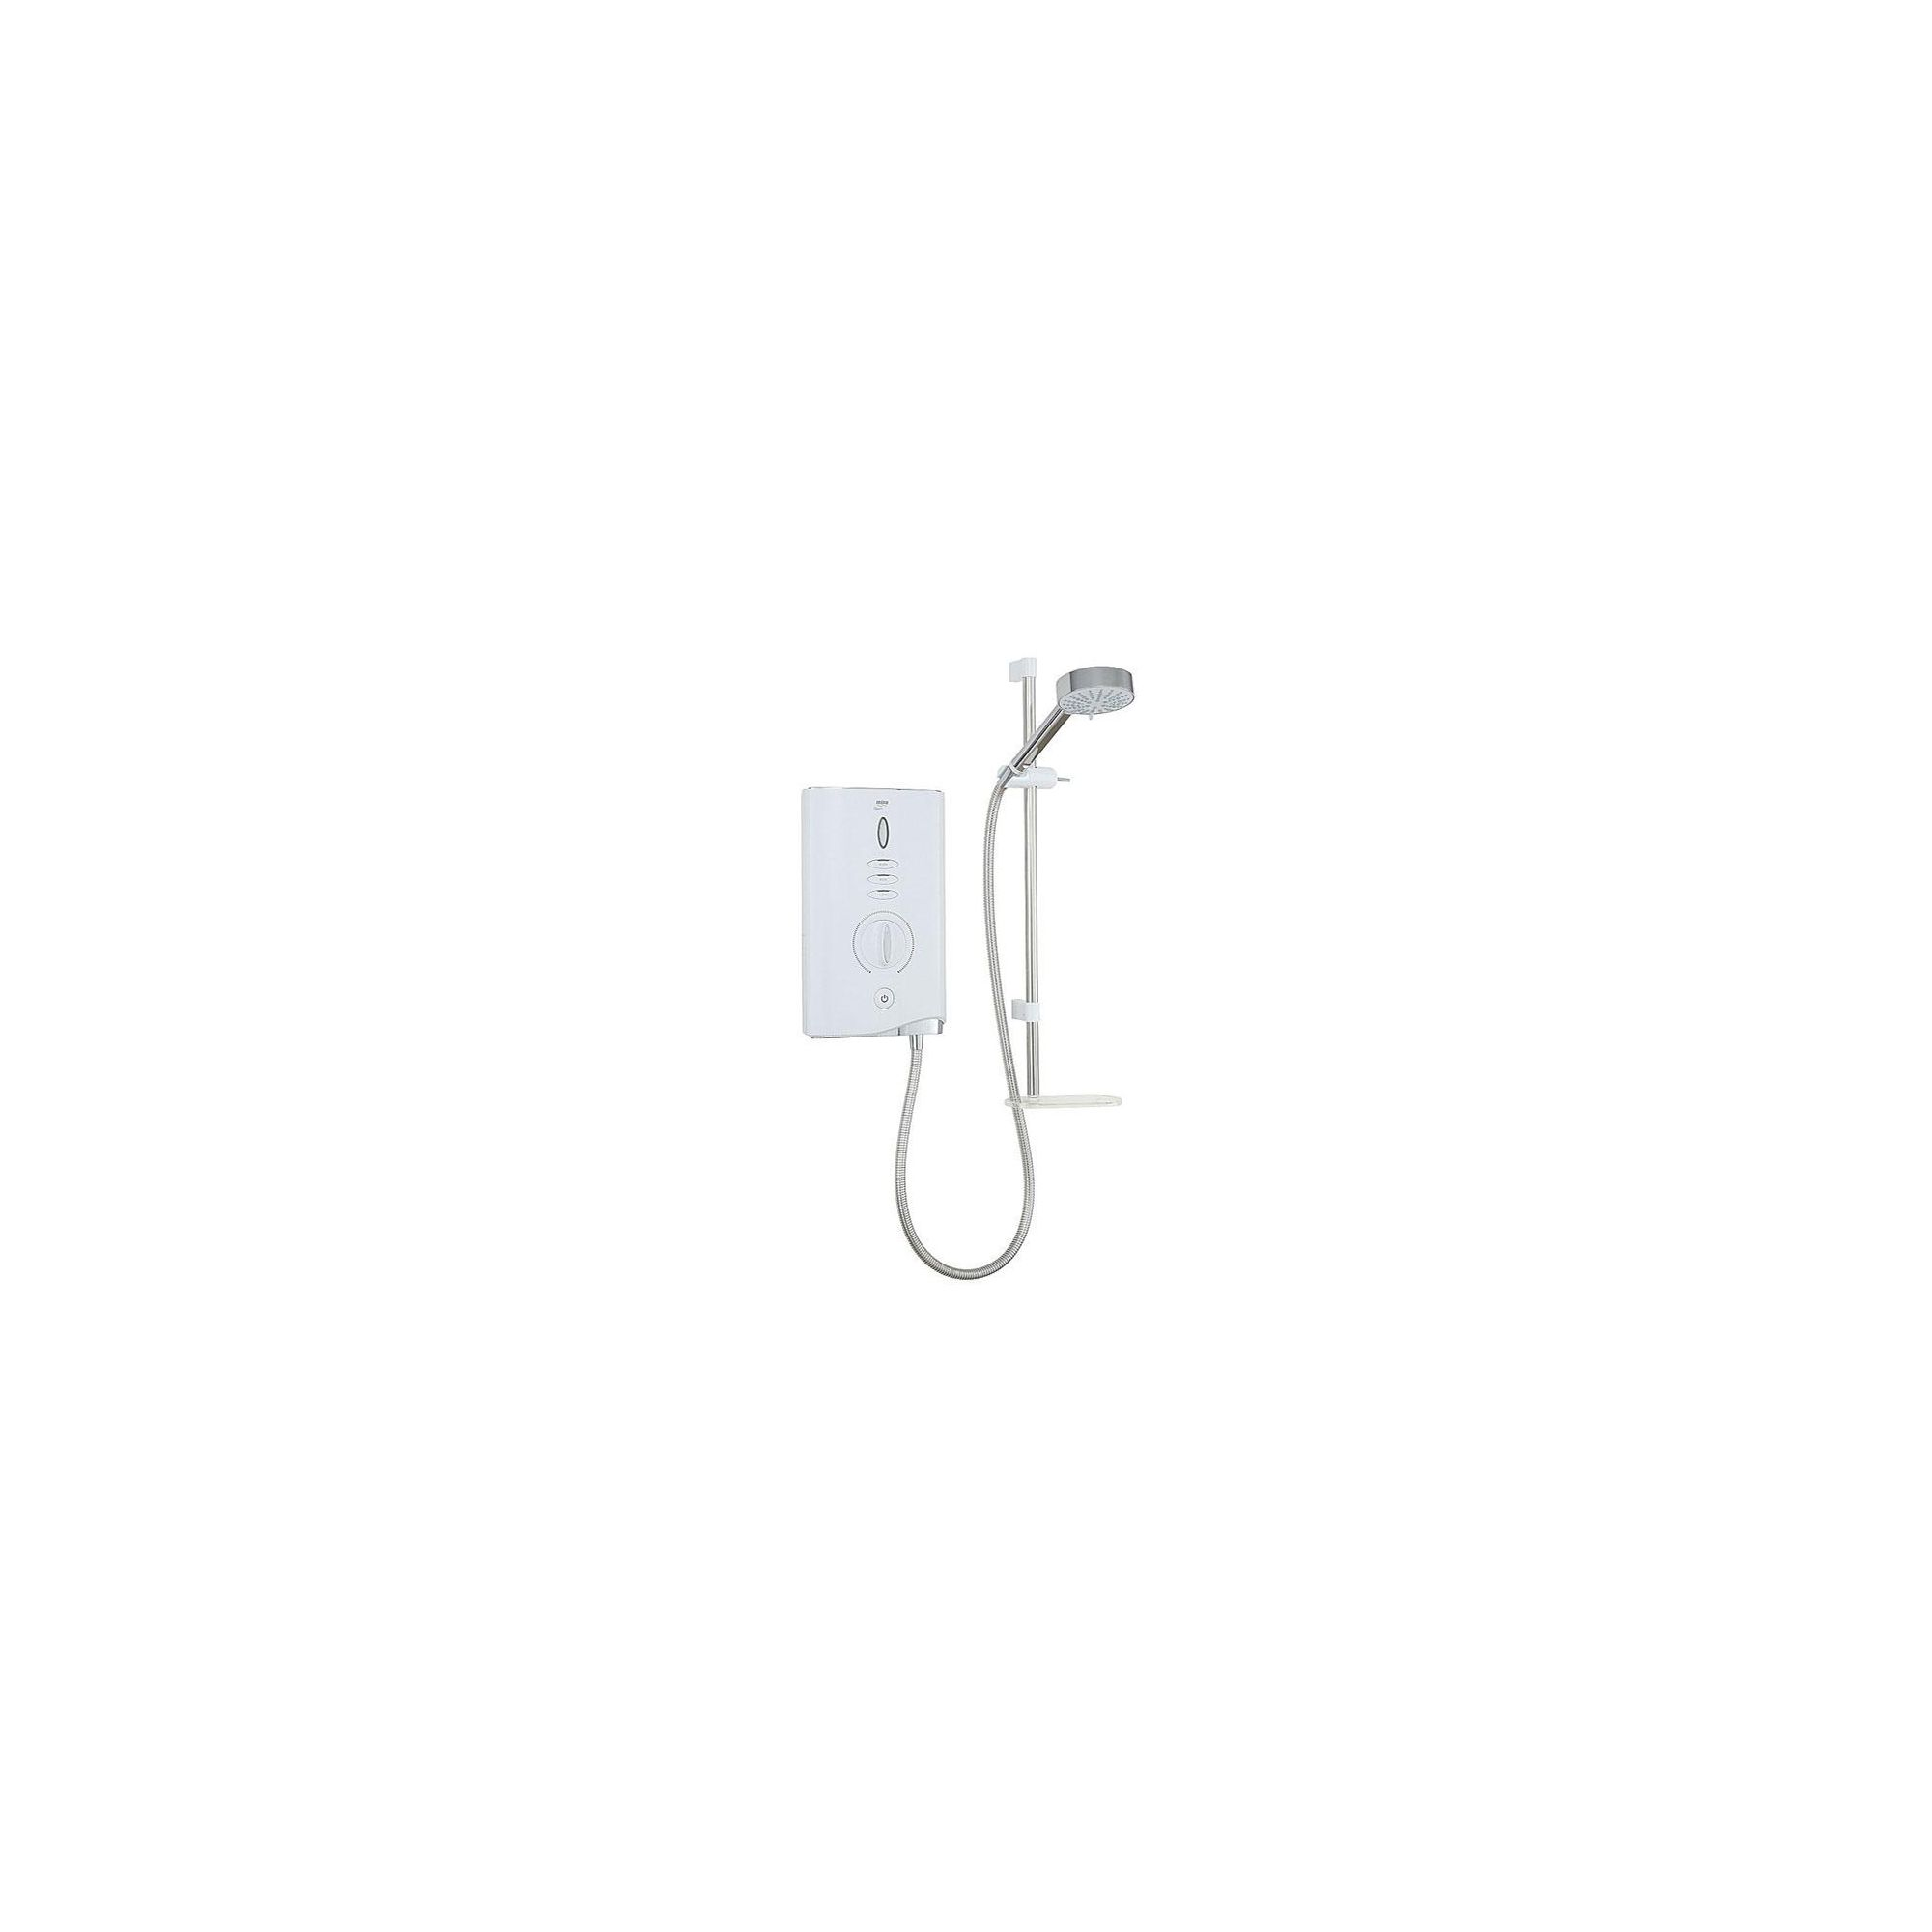 Mira Sport Max Airboost 10.8 kW Electric Shower with 4 Spray Handshower, White/Chrome at Tesco Direct